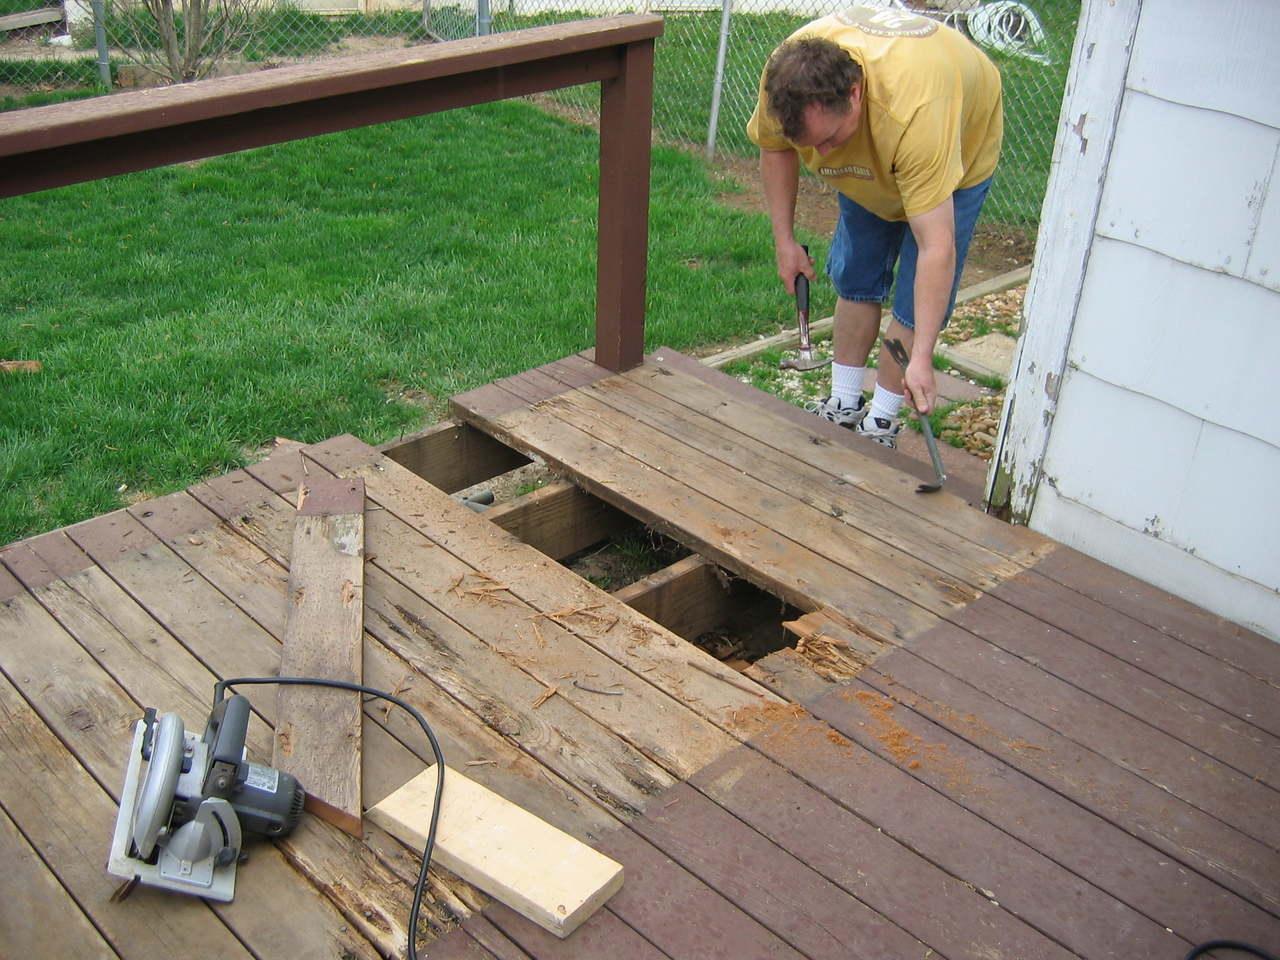 DECK Damage to deck after tenant layed a piece of plywood down to serve as a roof for cats living beneath!